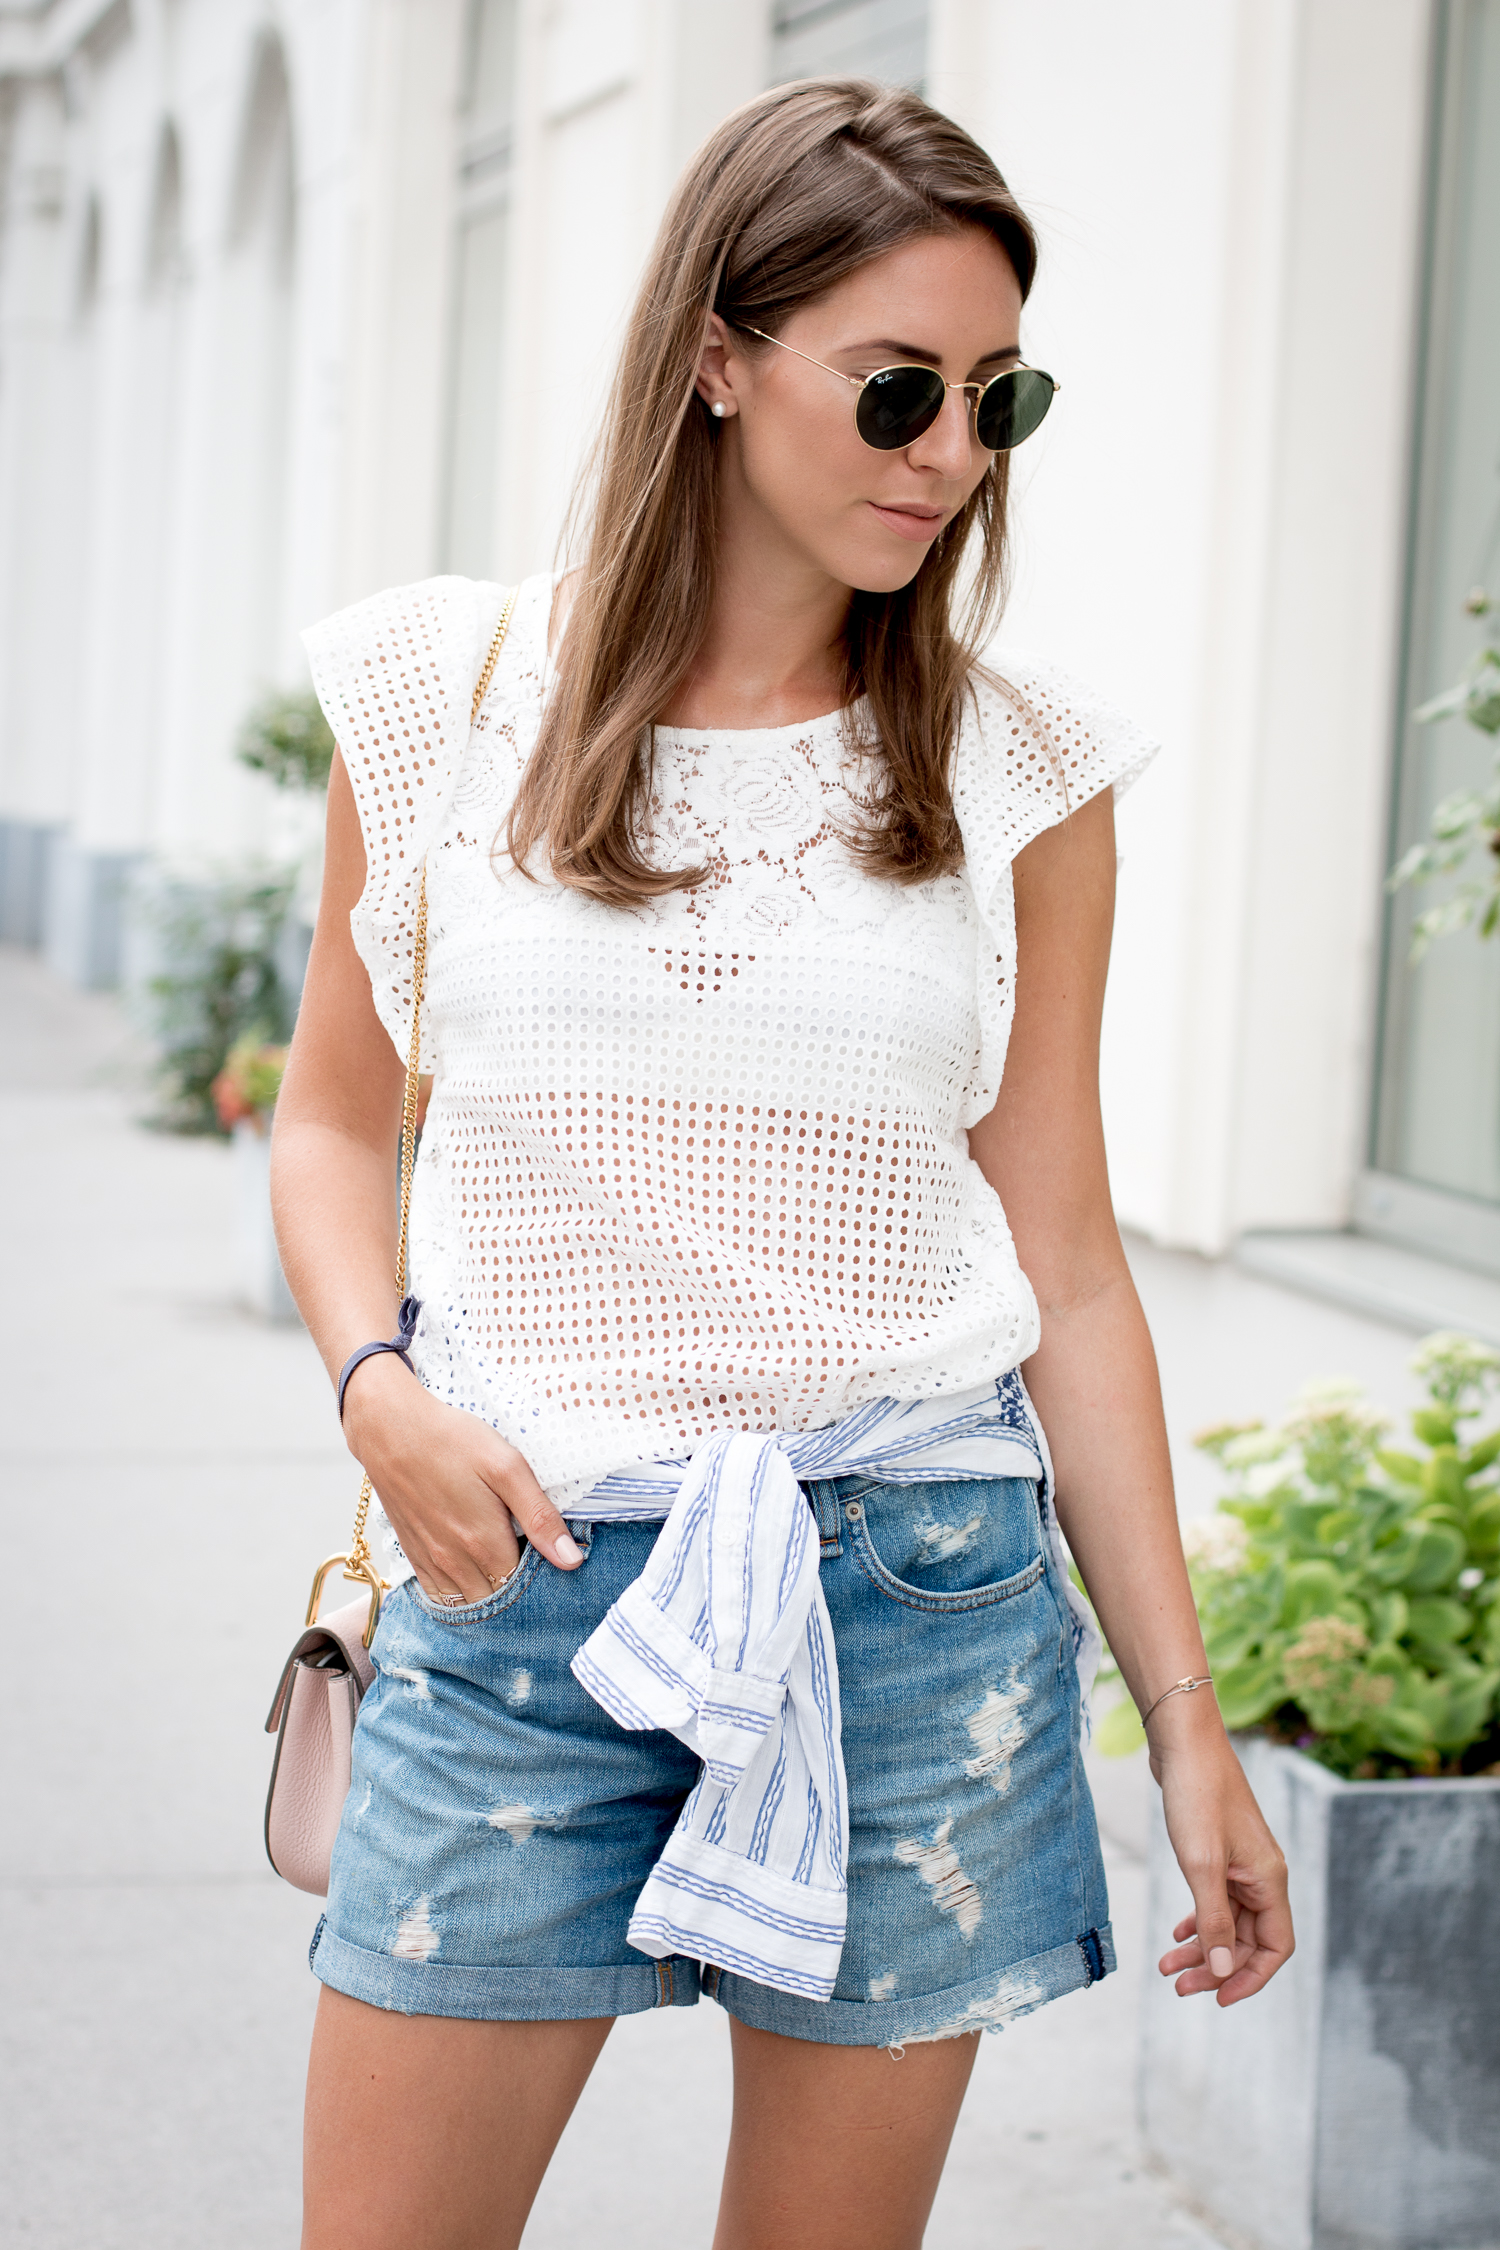 editors-pick-how-to-wear-summer-lace-6